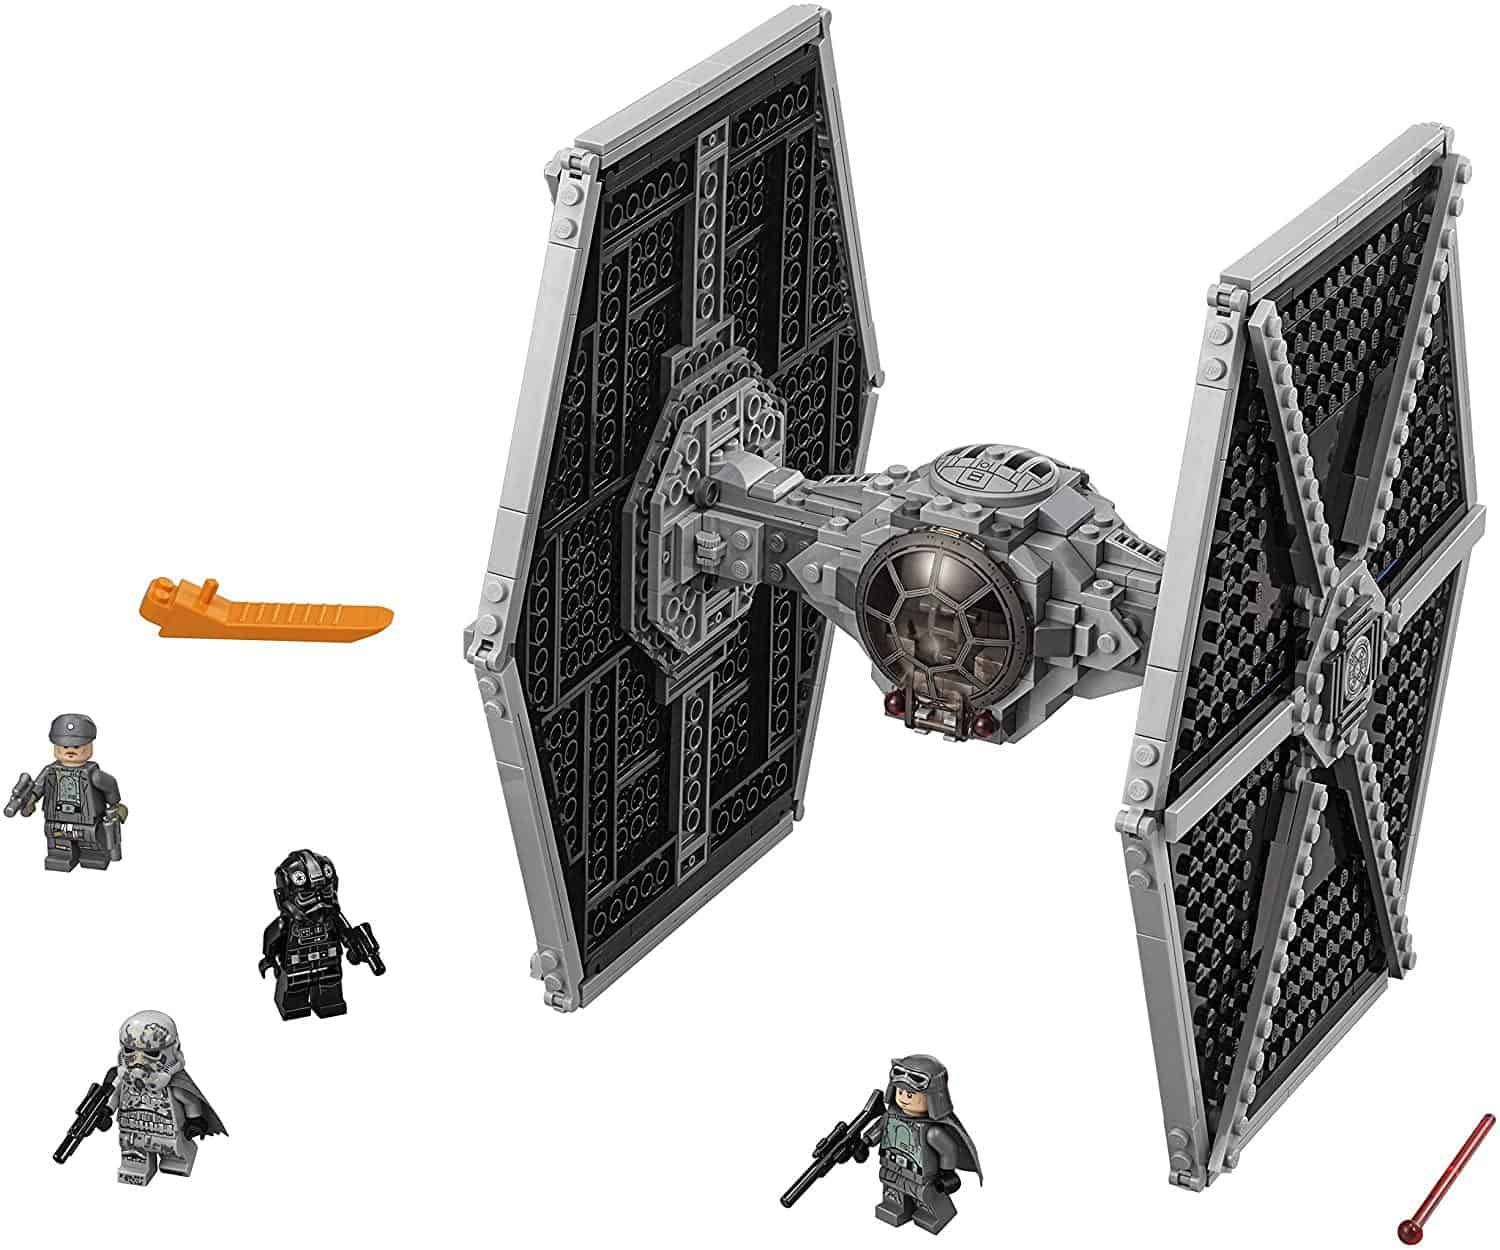 Star Wars Imperial TIE Fighter 75211 Building Kit